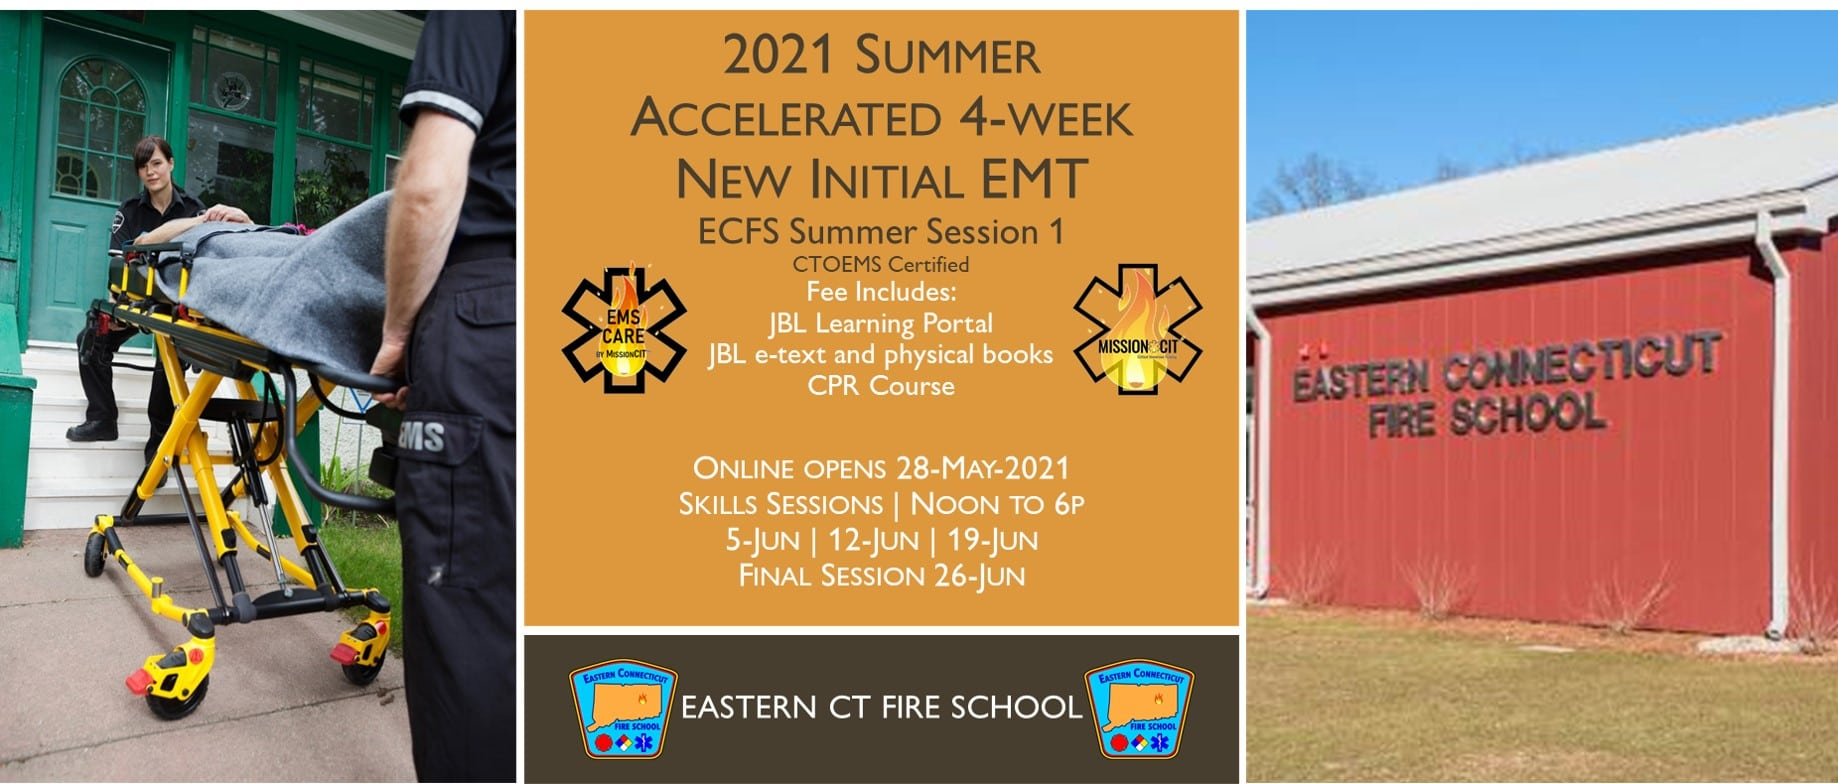 2021 Summer EMT Accelerated Initial Course   ECFS Session 1